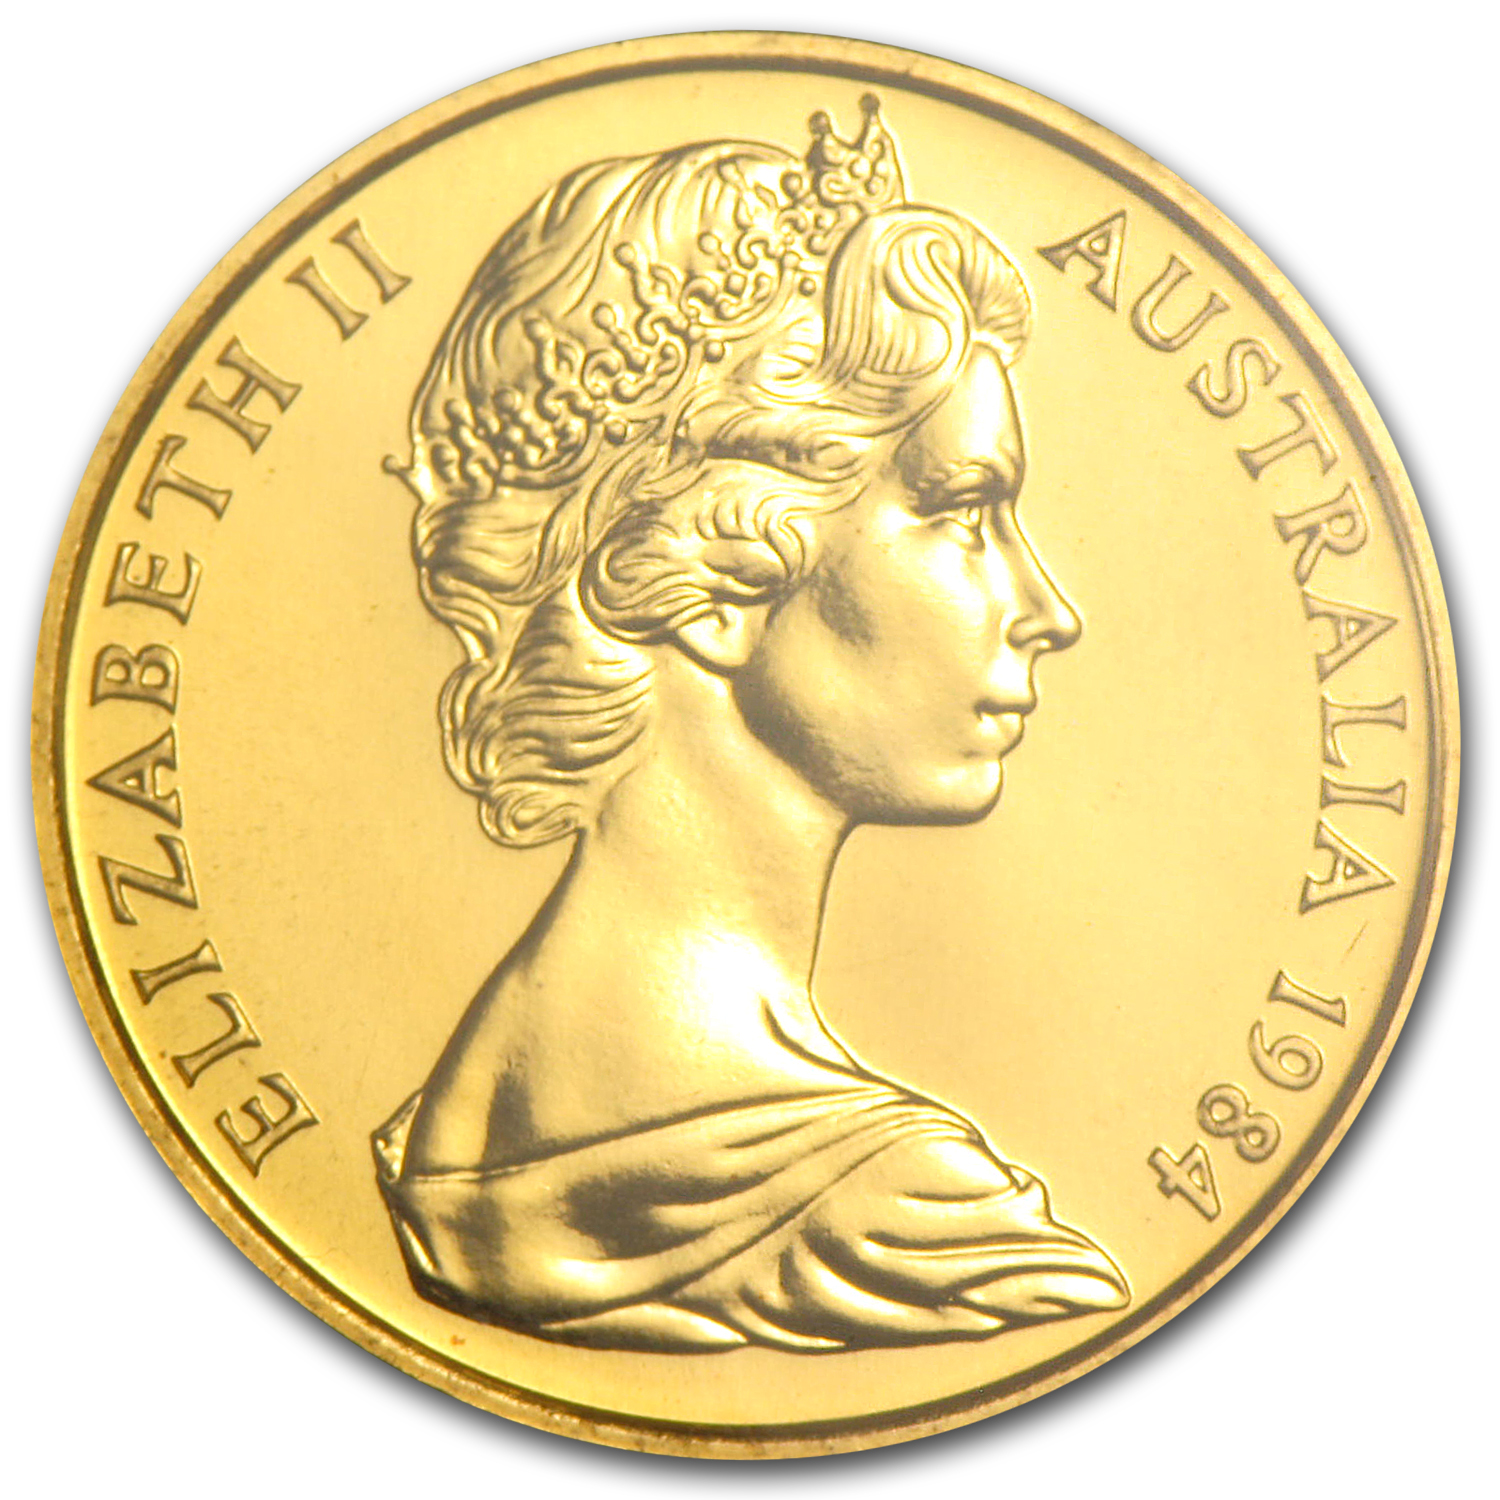 Australia 1984 200 Dollars Gold Uncirculated Coin